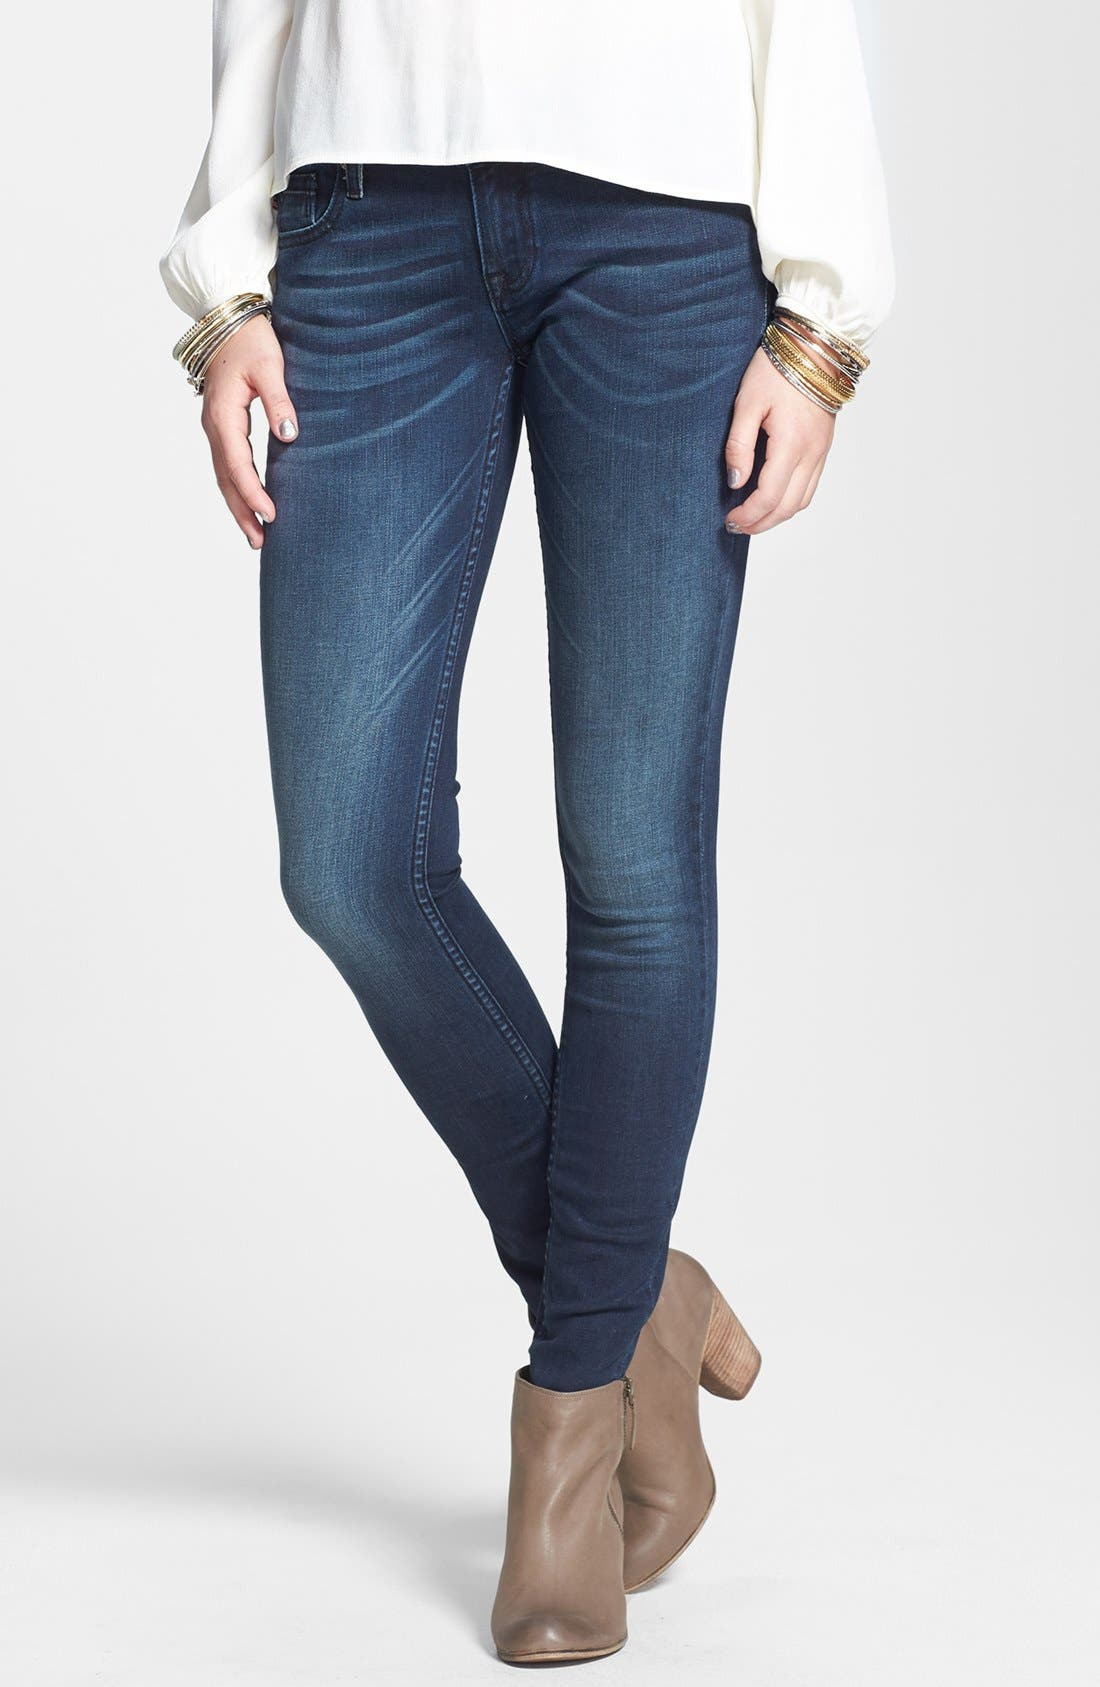 Alternate Image 1 Selected - Vigoss 'New York' Flap Pocket Skinny Jeans (Ink)